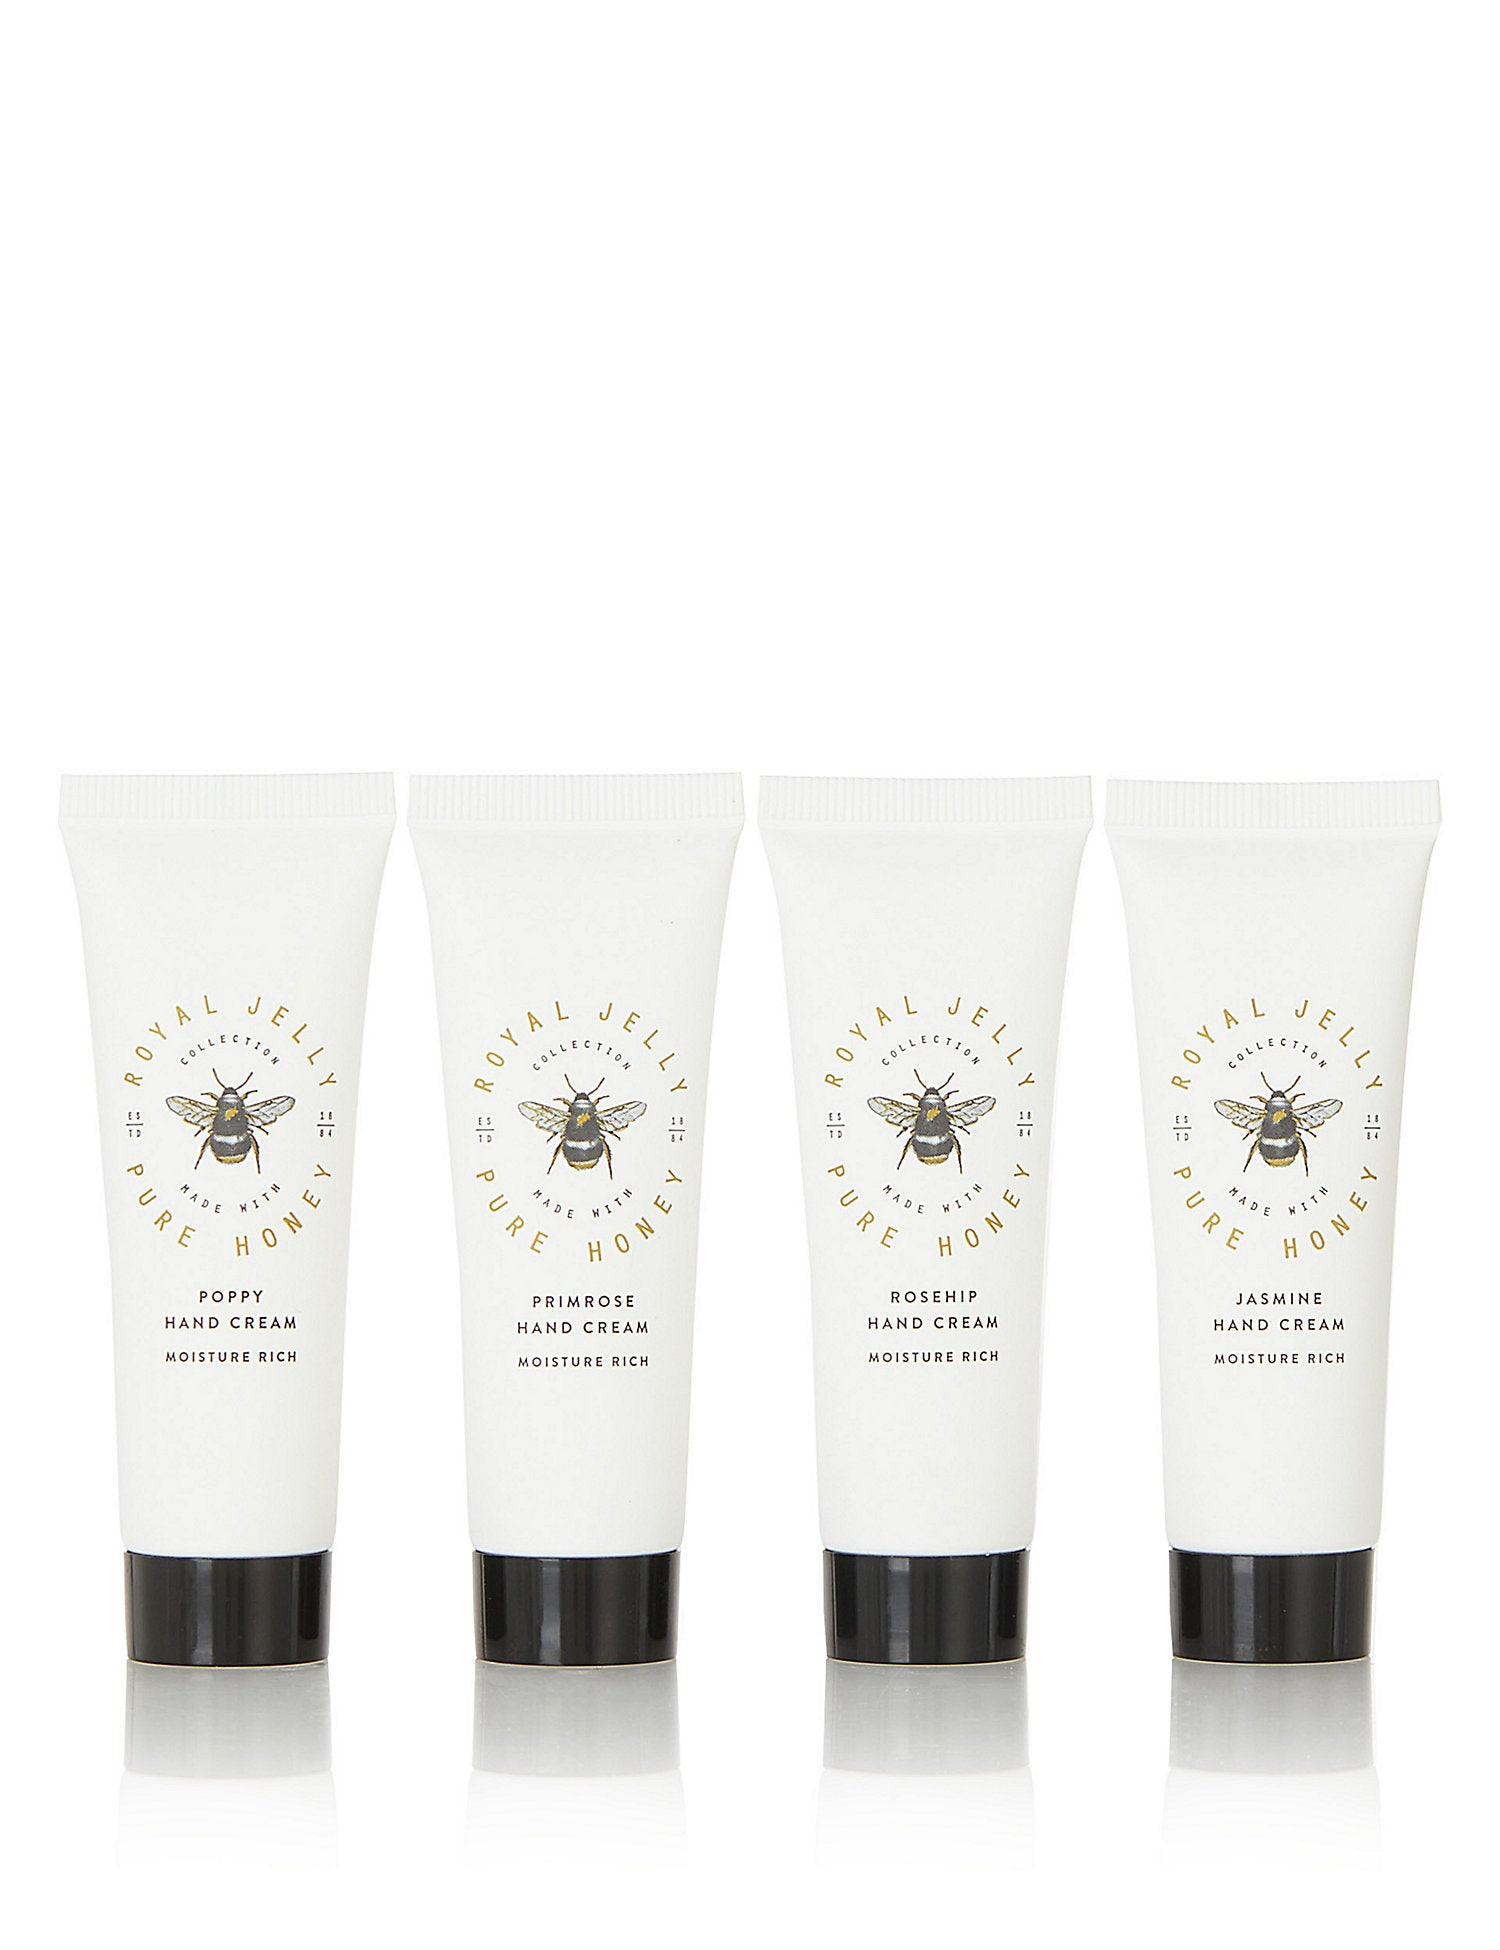 Royal Jelly Hand Cream Gift Set